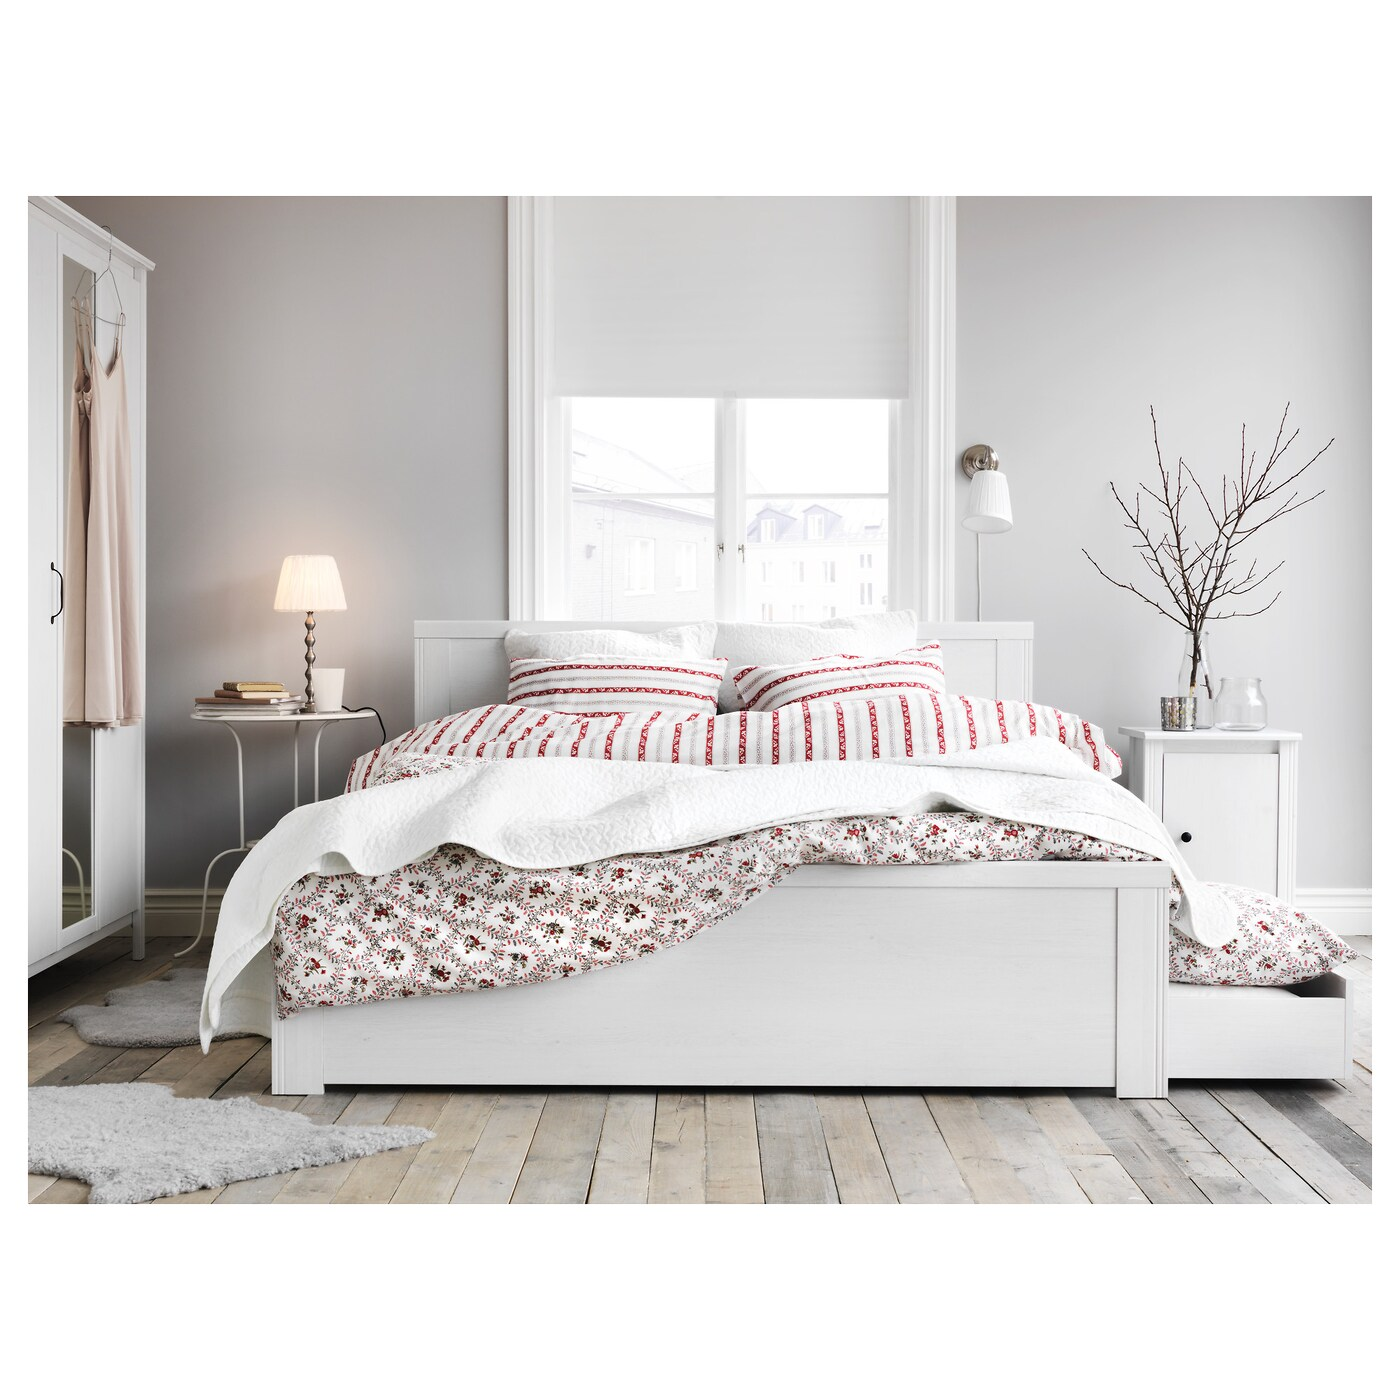 Dekenlade Ikea Bed Frame Brusali Bed Frame